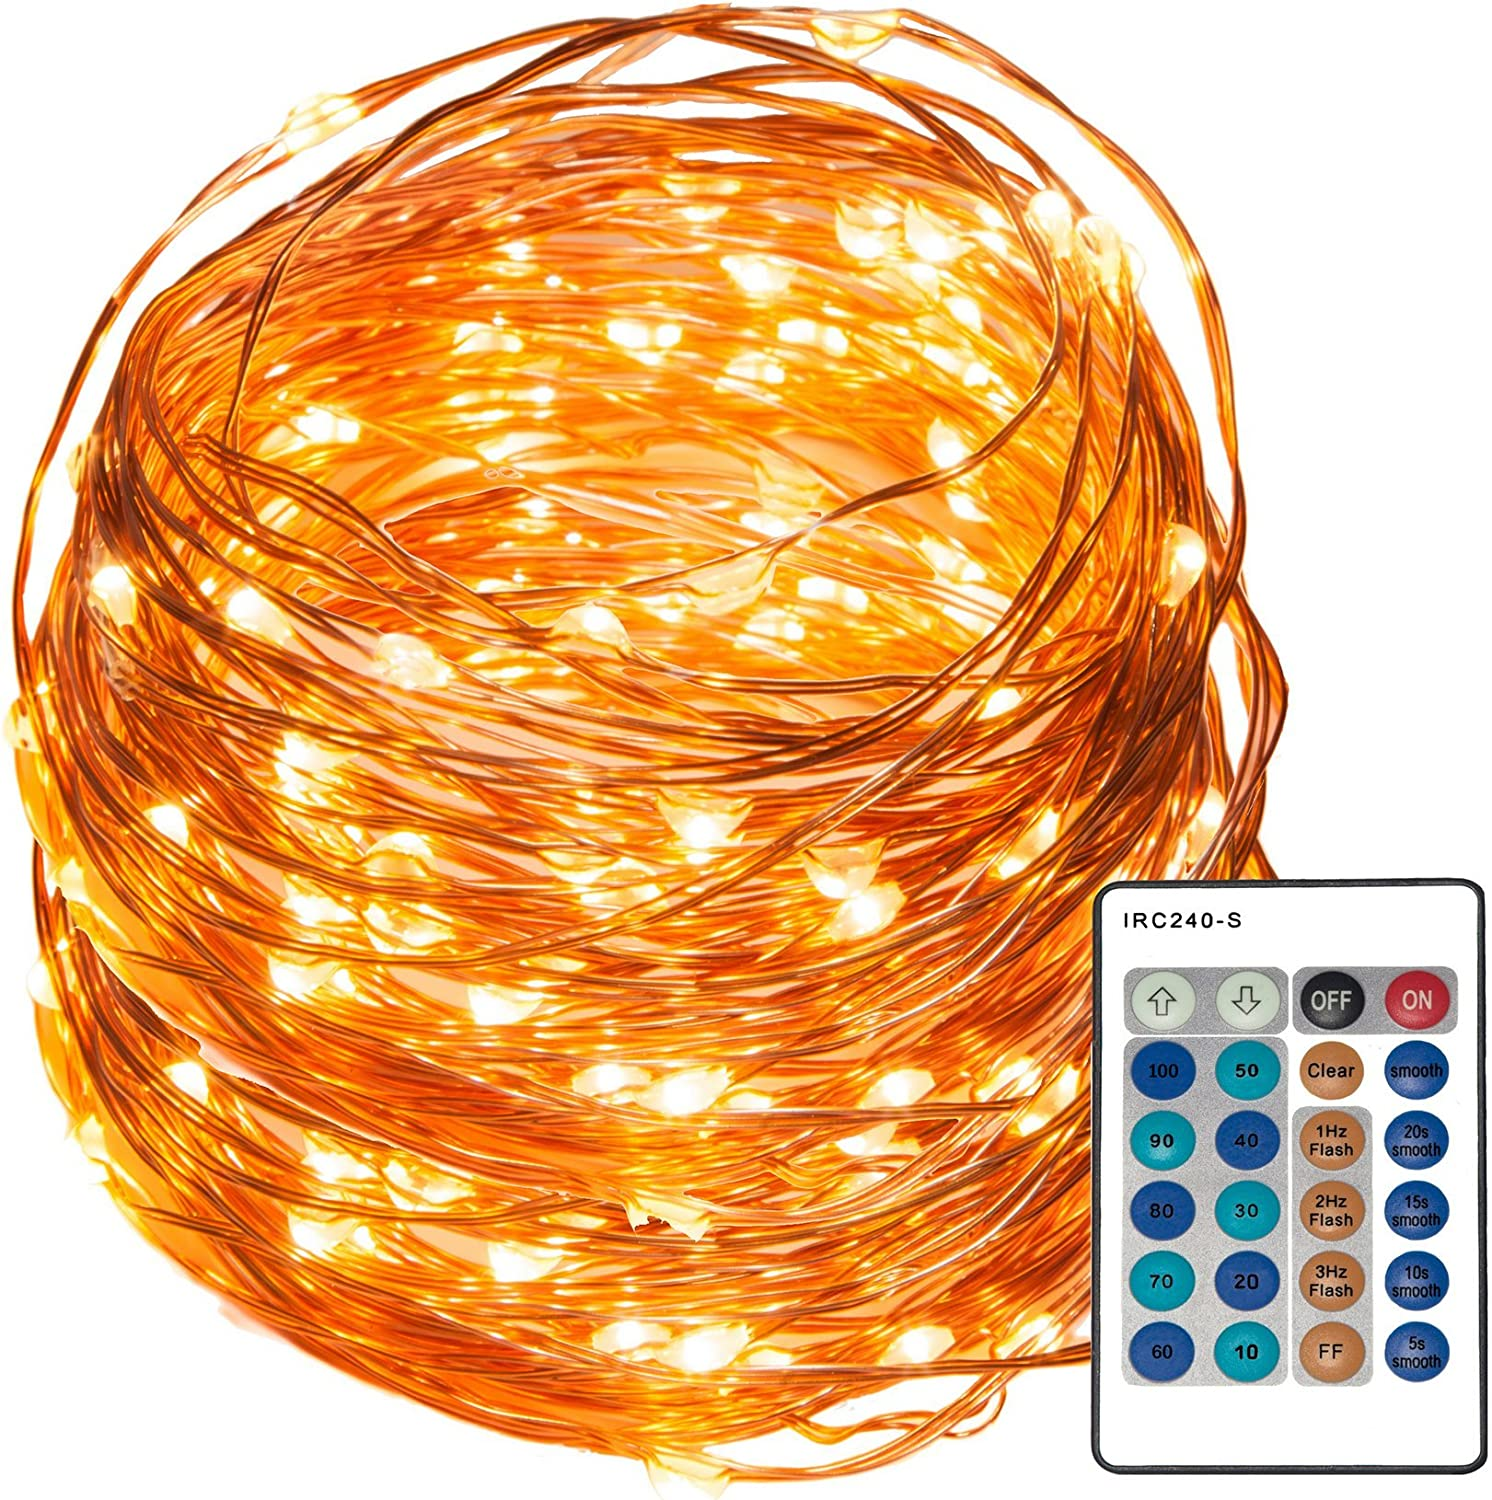 REMZES Starry String Large discharge sale Lights: 33 Foot Copper 100 Wire Las Vegas Mall with Strand